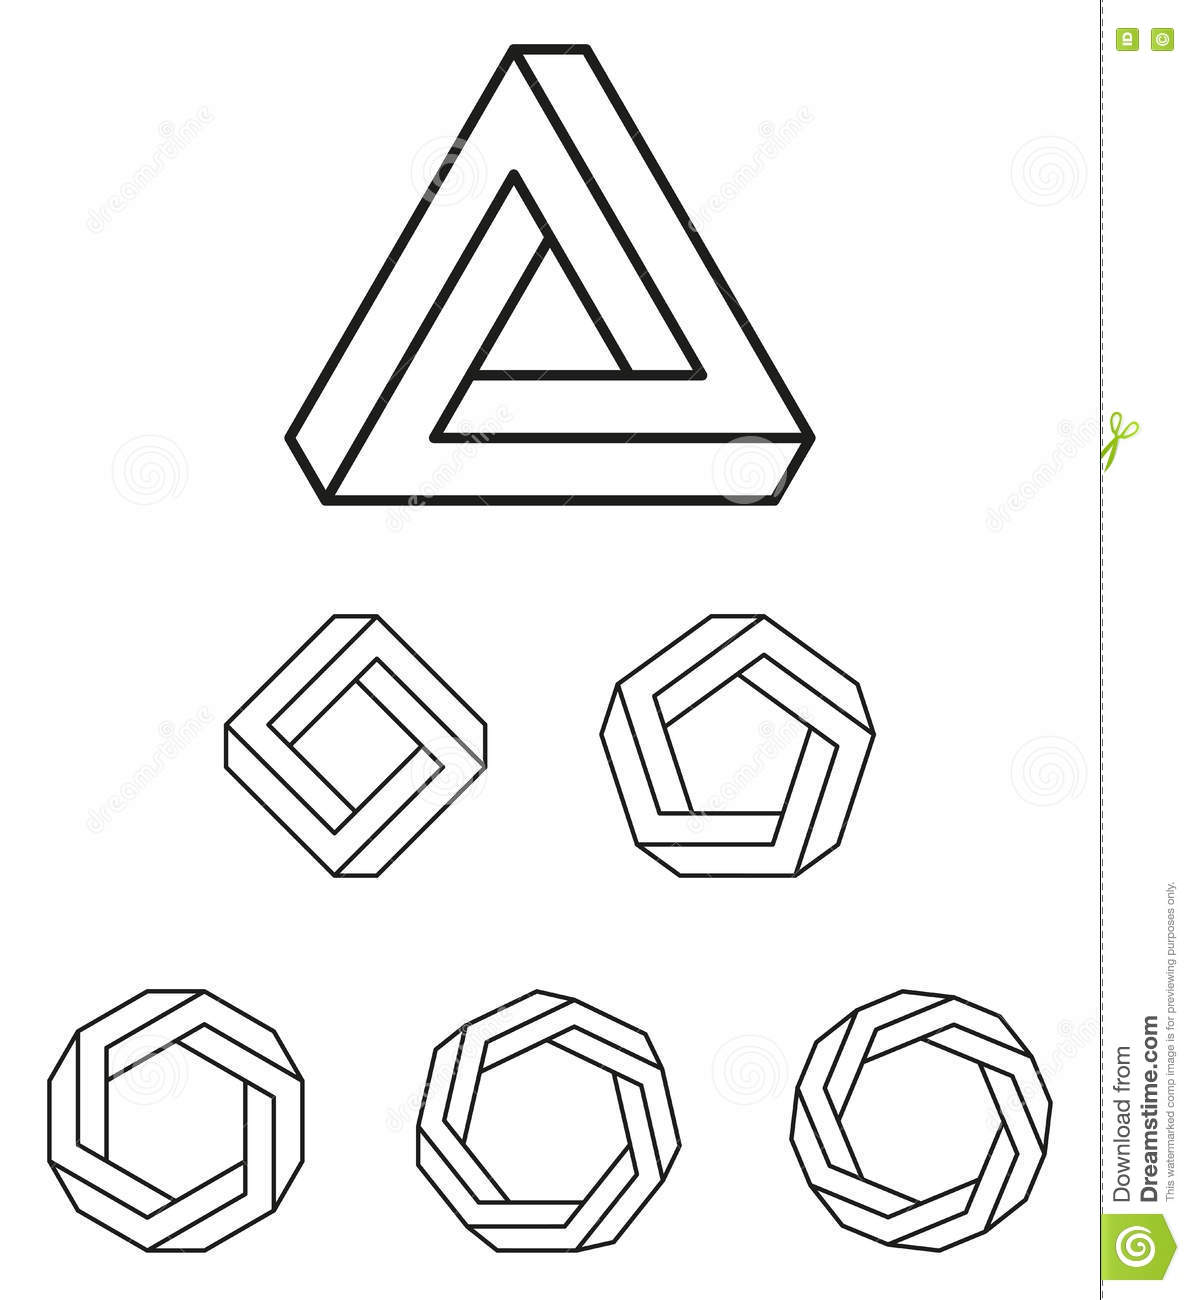 Penrose Triangle And Polygons Outline Stock Vector - Illustration of ... for Triangle Objects Clipart Black And White  54lyp